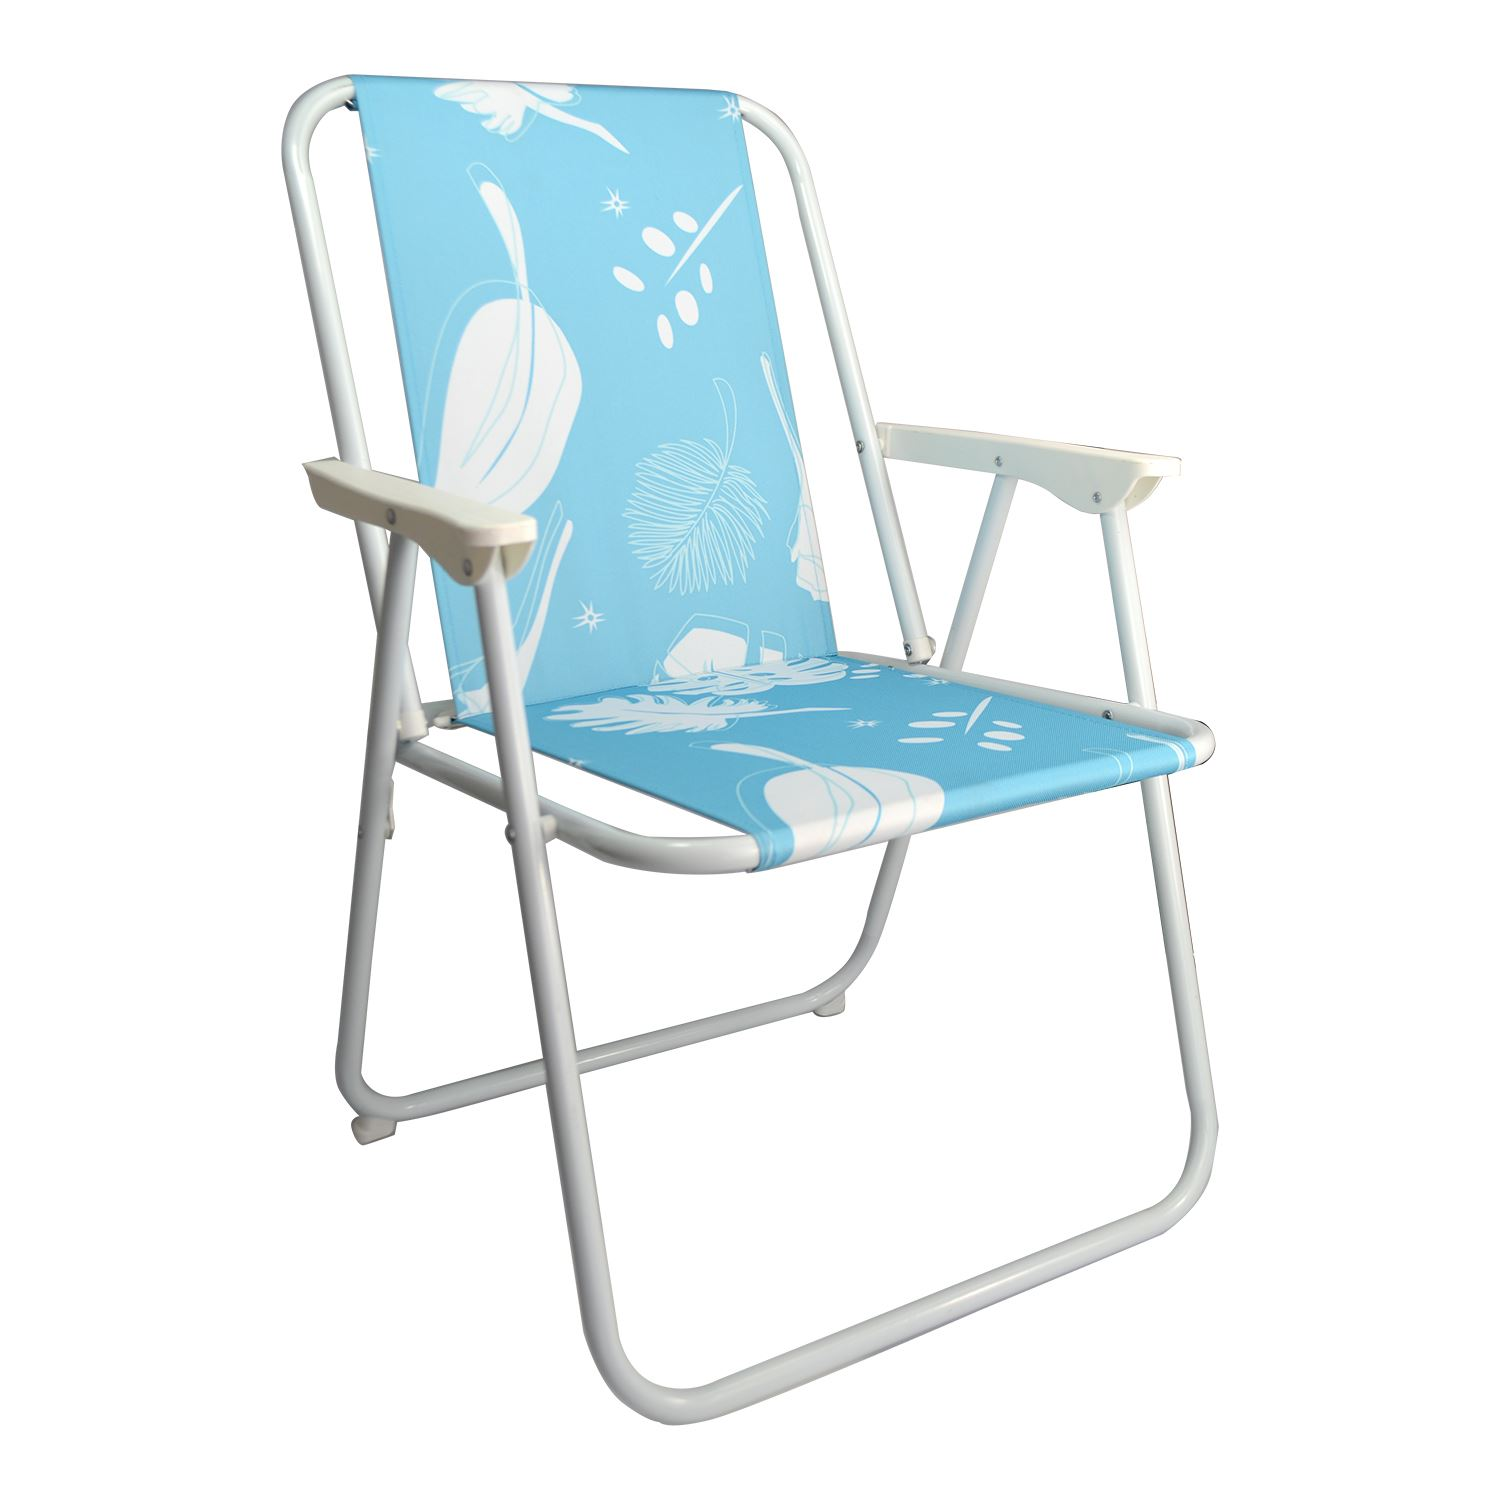 Folding Garden Patio Spring Deck Chair Picnic Camping Beach